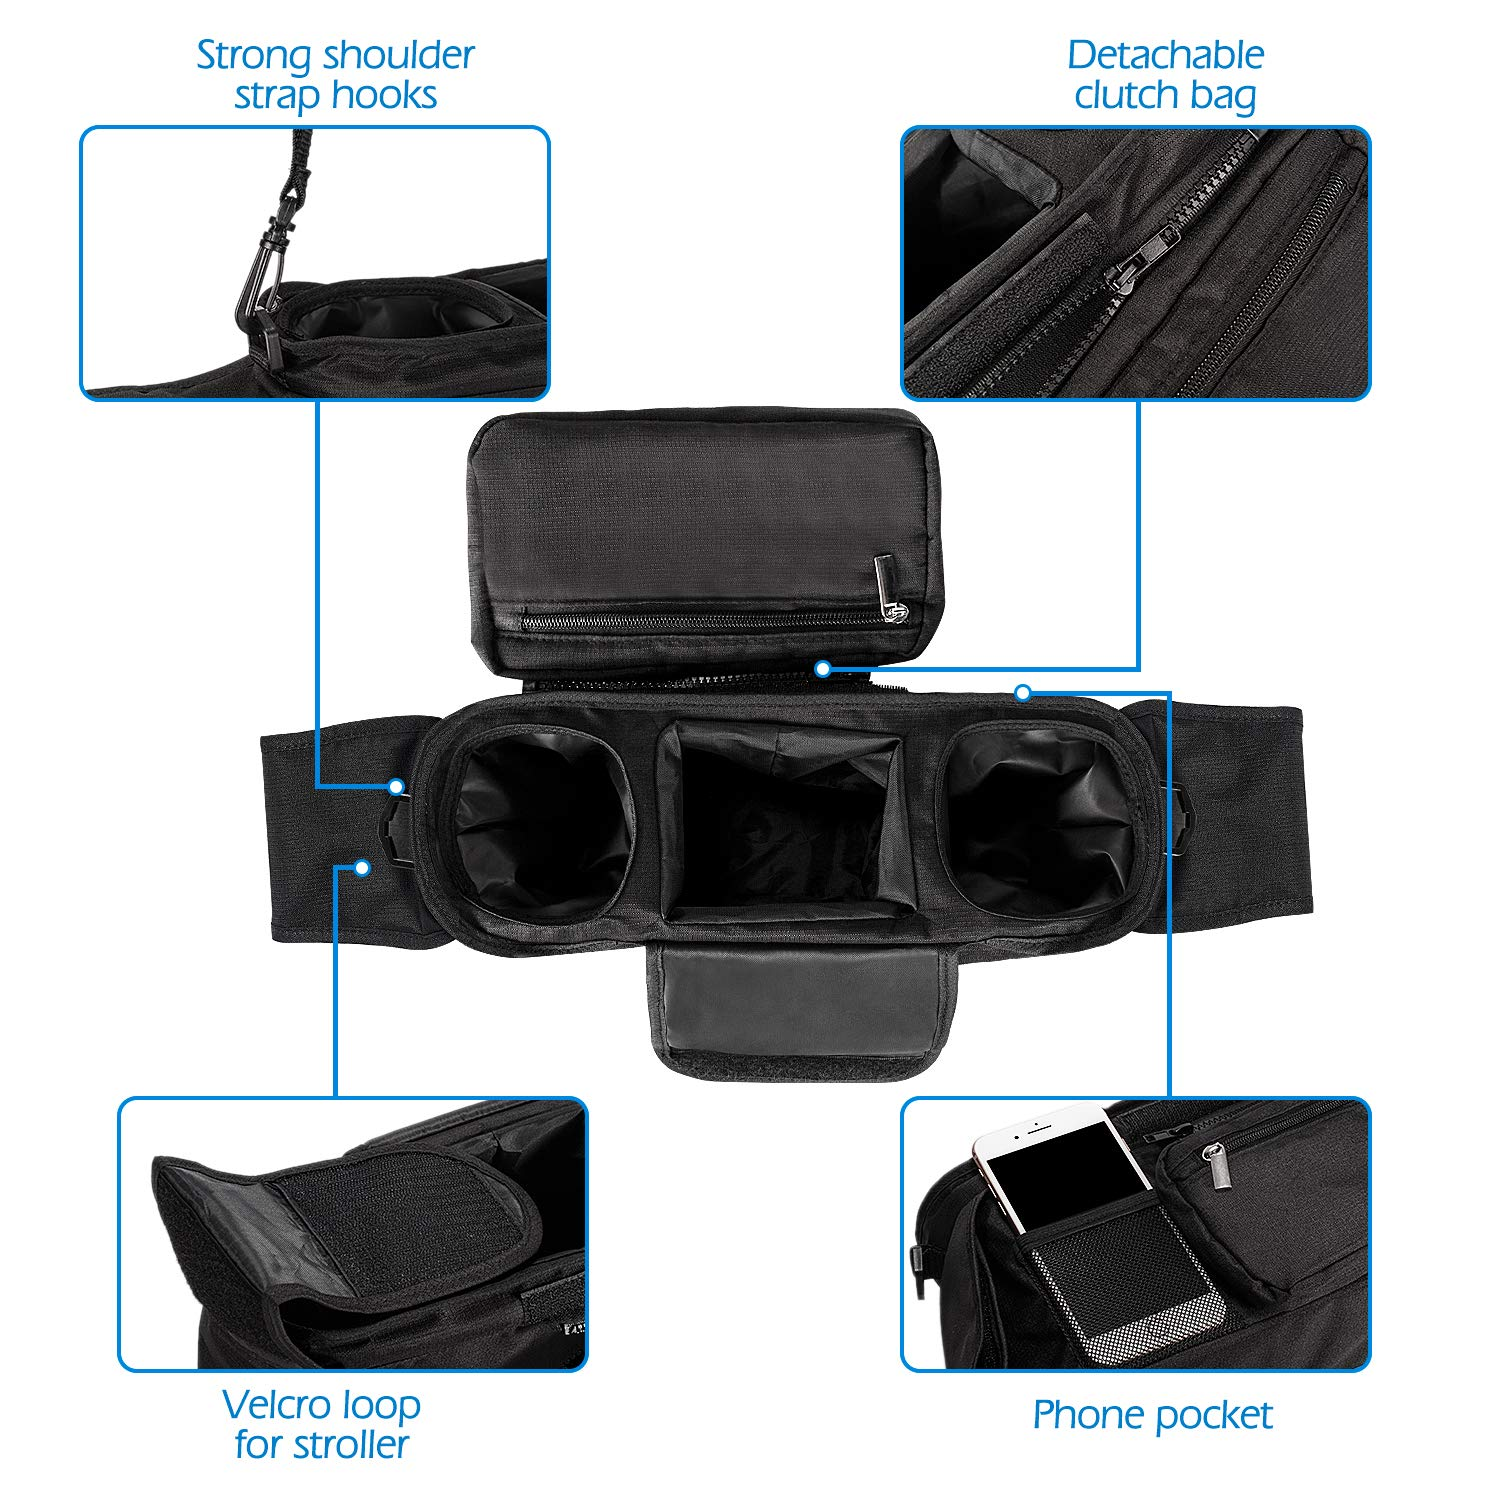 Universal Stroller Organizer with 2 Insulated Cup Holders, Lupantte Stroller Accessories, for Carrying Diaper, iPhone, Toys & Snacks, Fits Britax, Uppababy, Baby Jogger, Bugaboo and BOB Stroller. by Lupantte (Image #4)